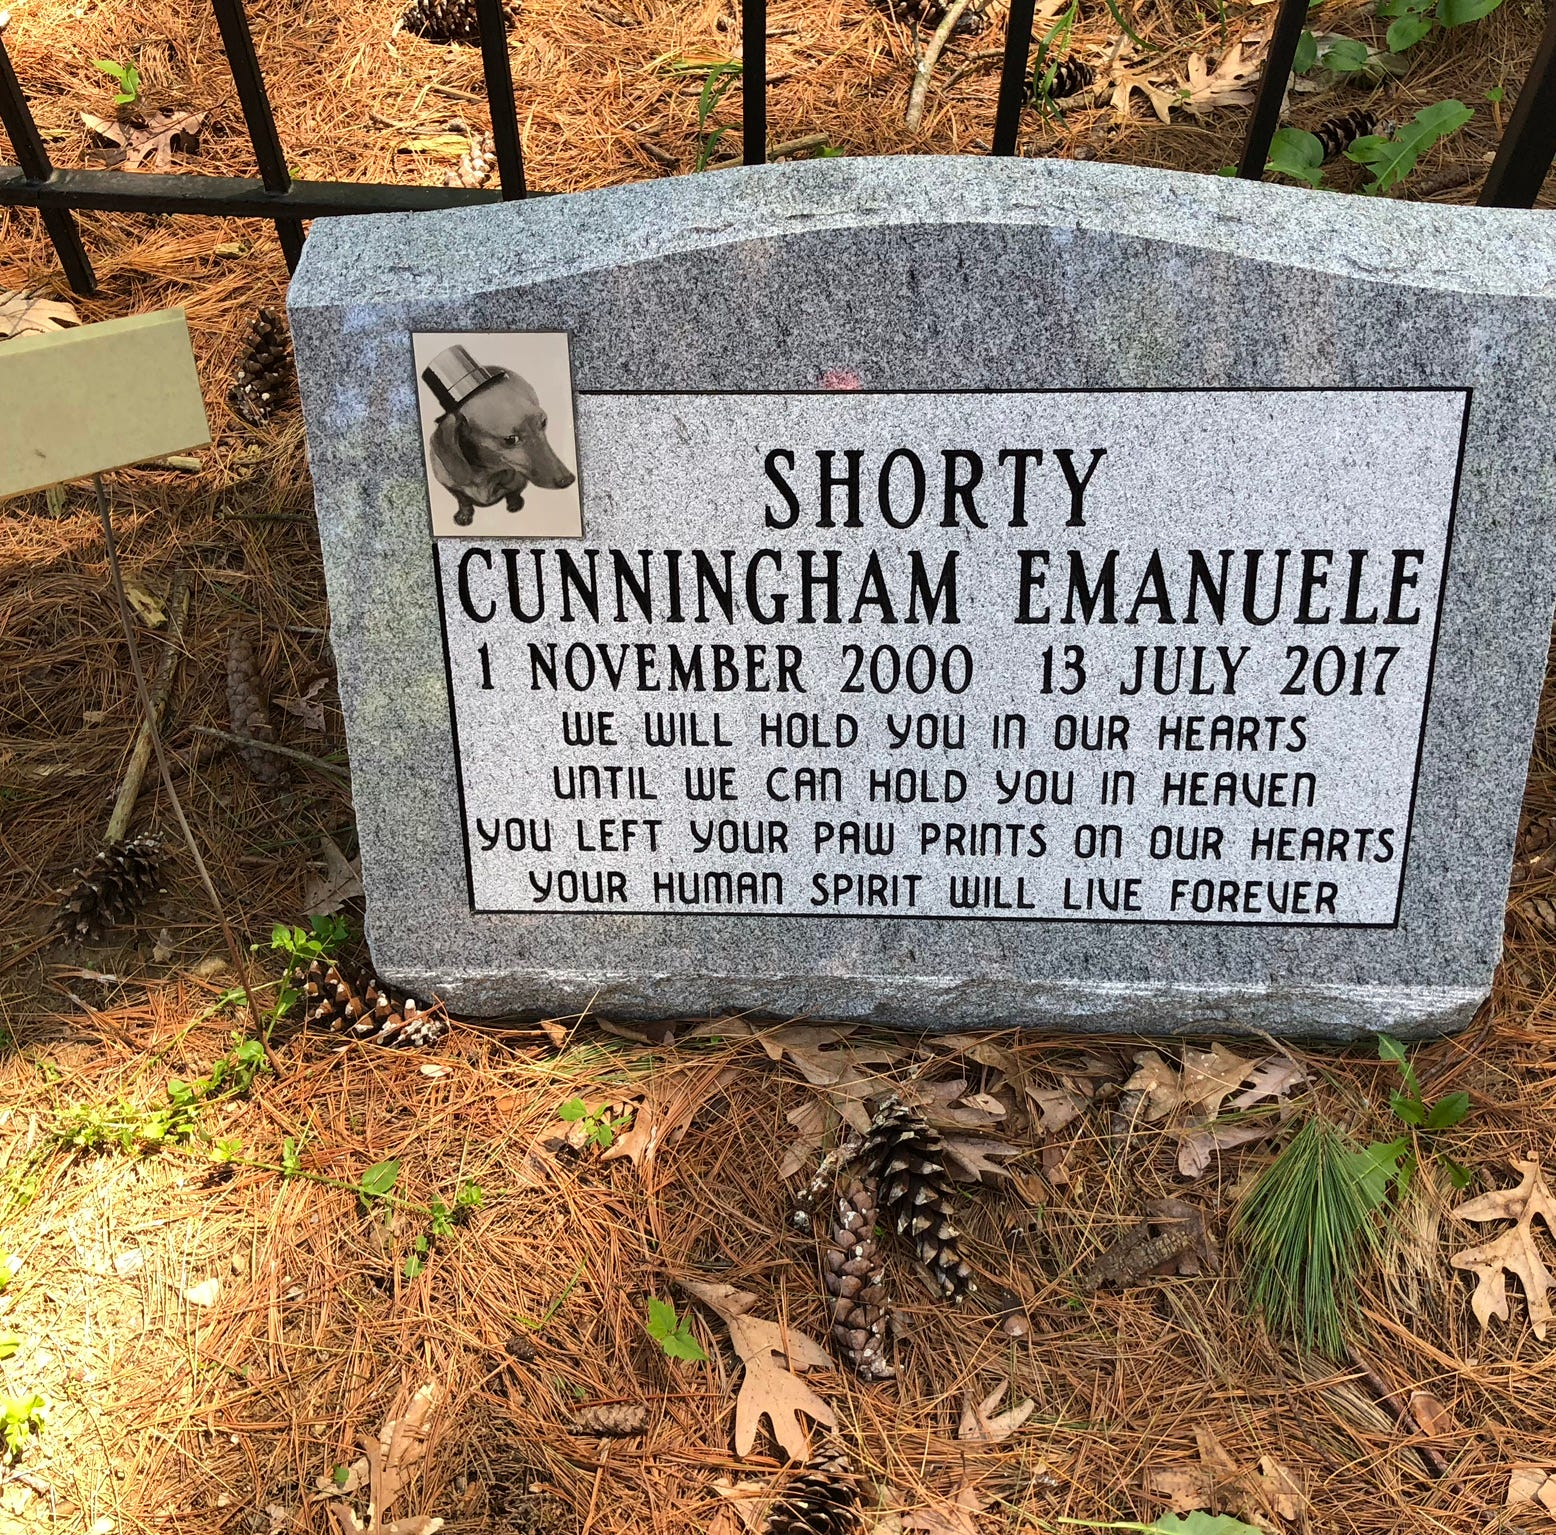 Attorney to pet owner: You have 30 days to exhume your pets from cemetery